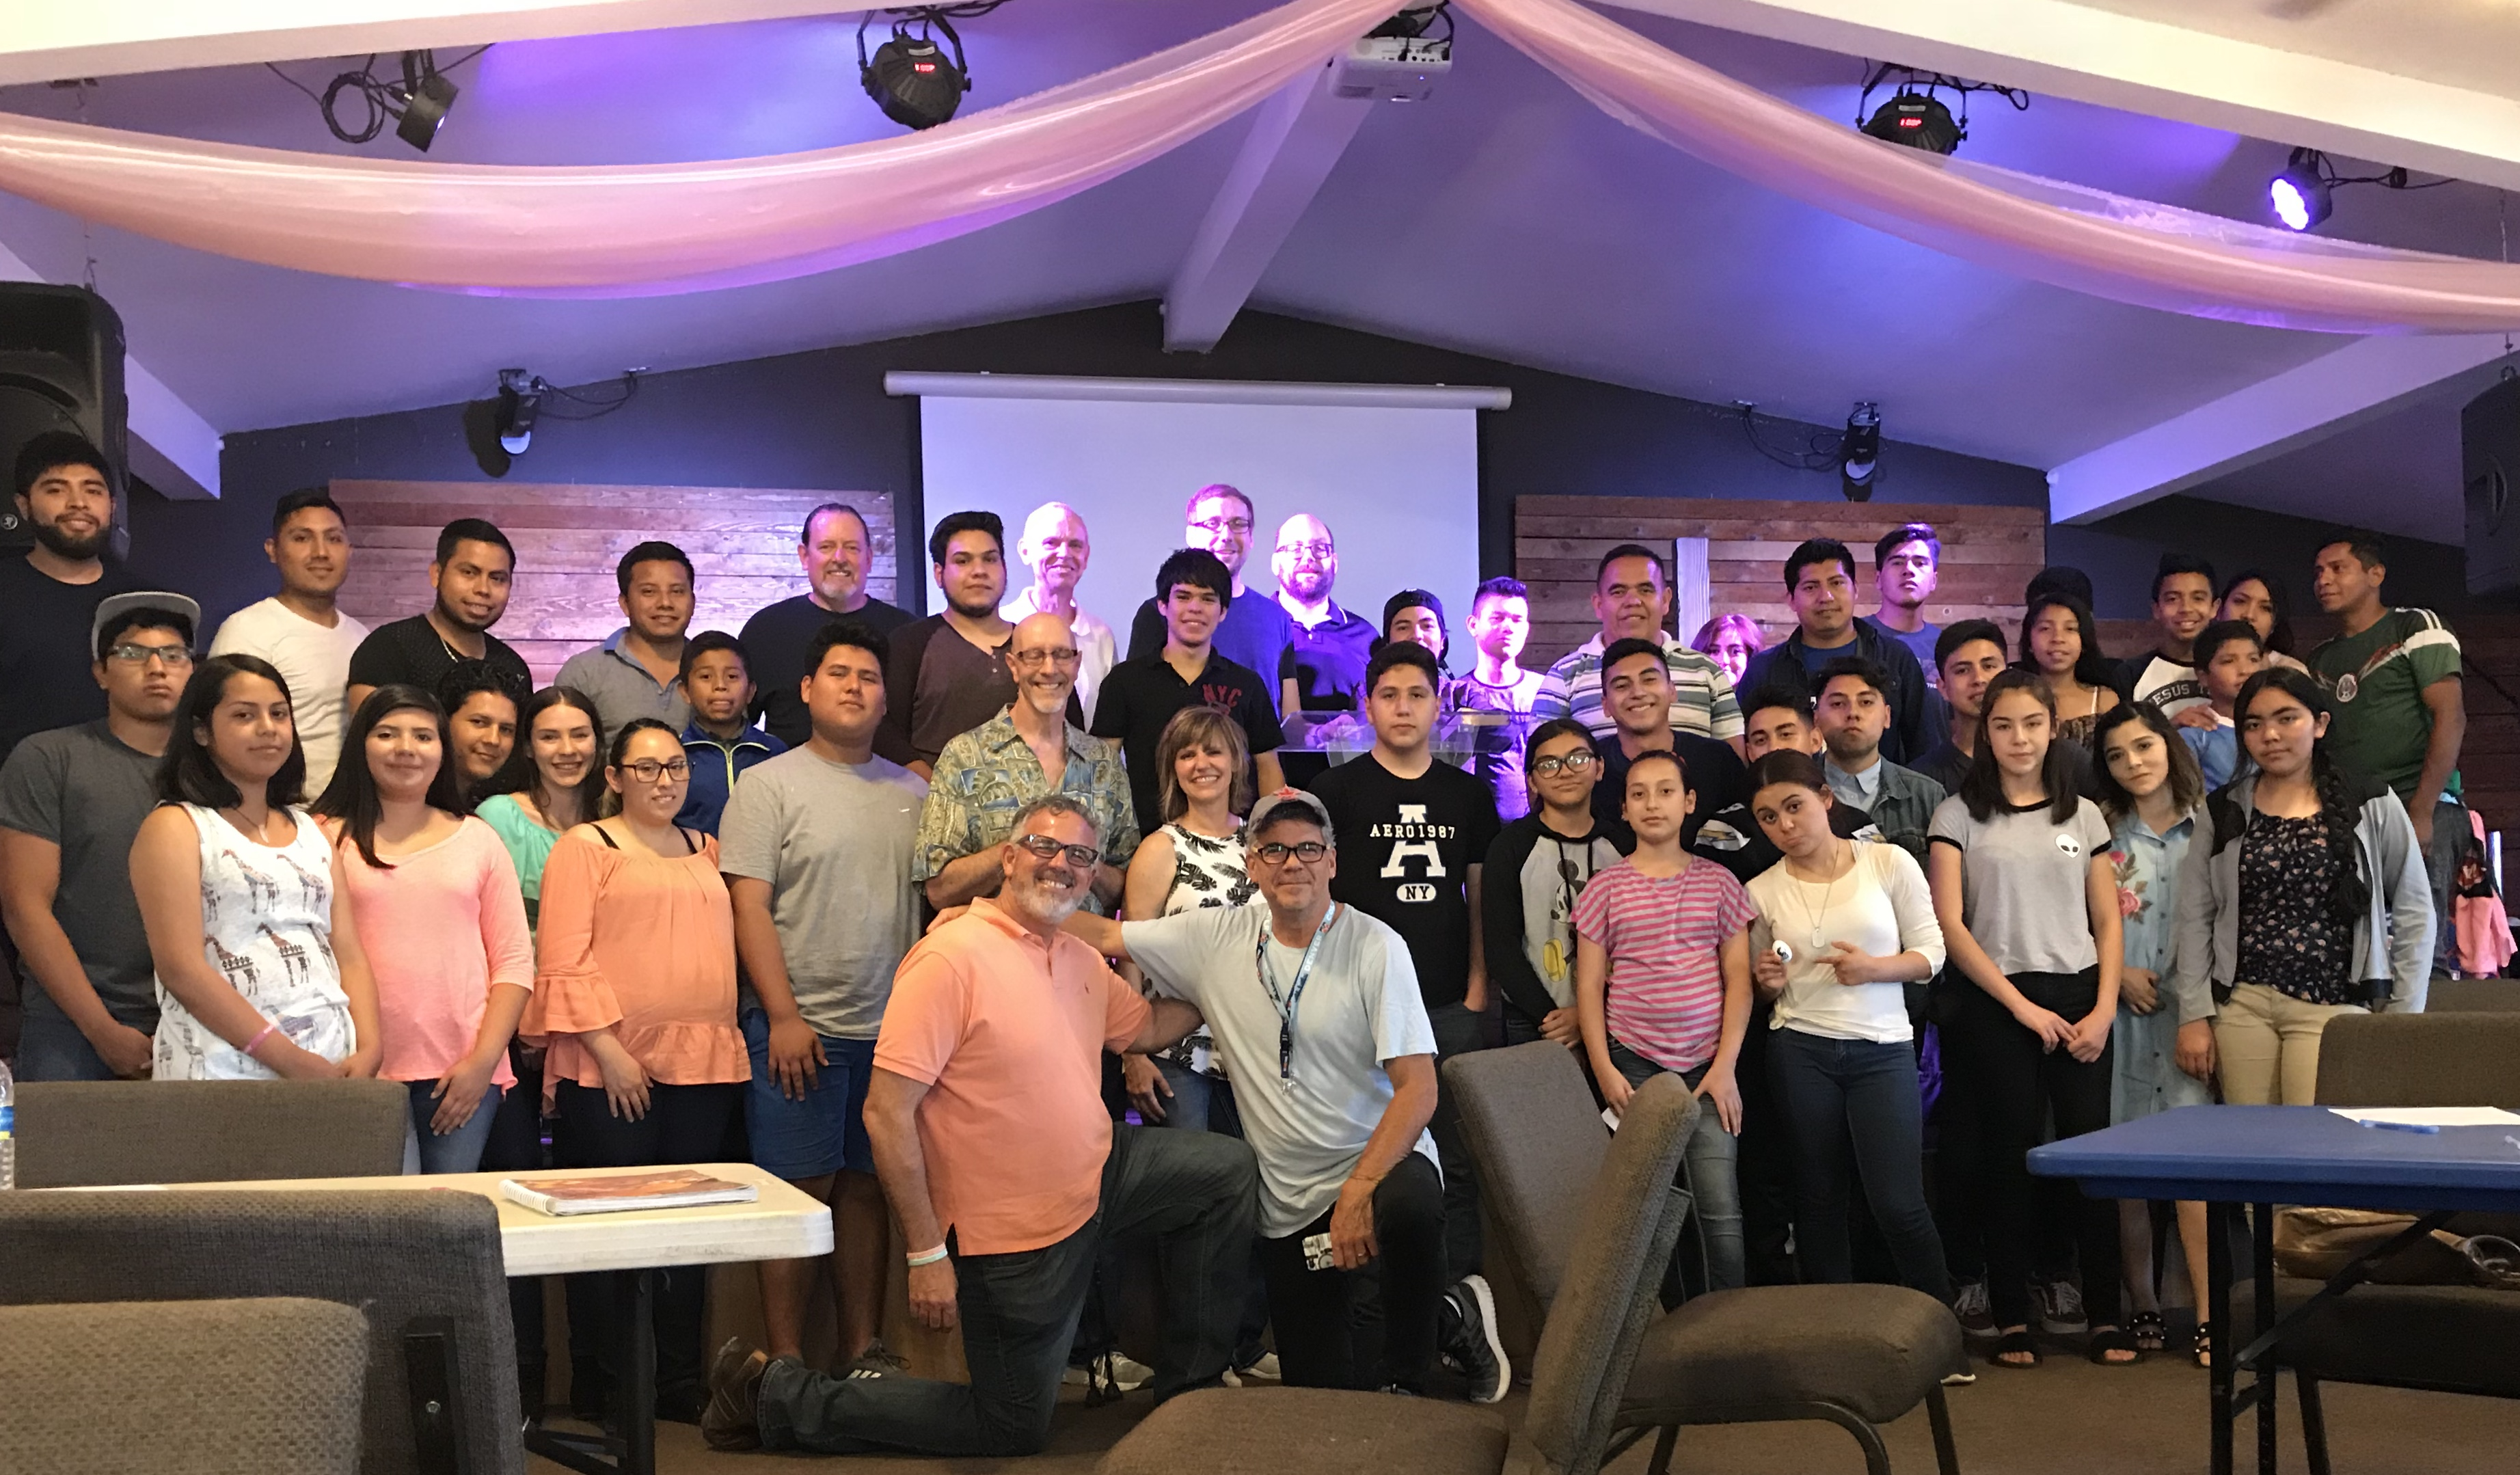 The group that attended the worship workshop in Tijuana